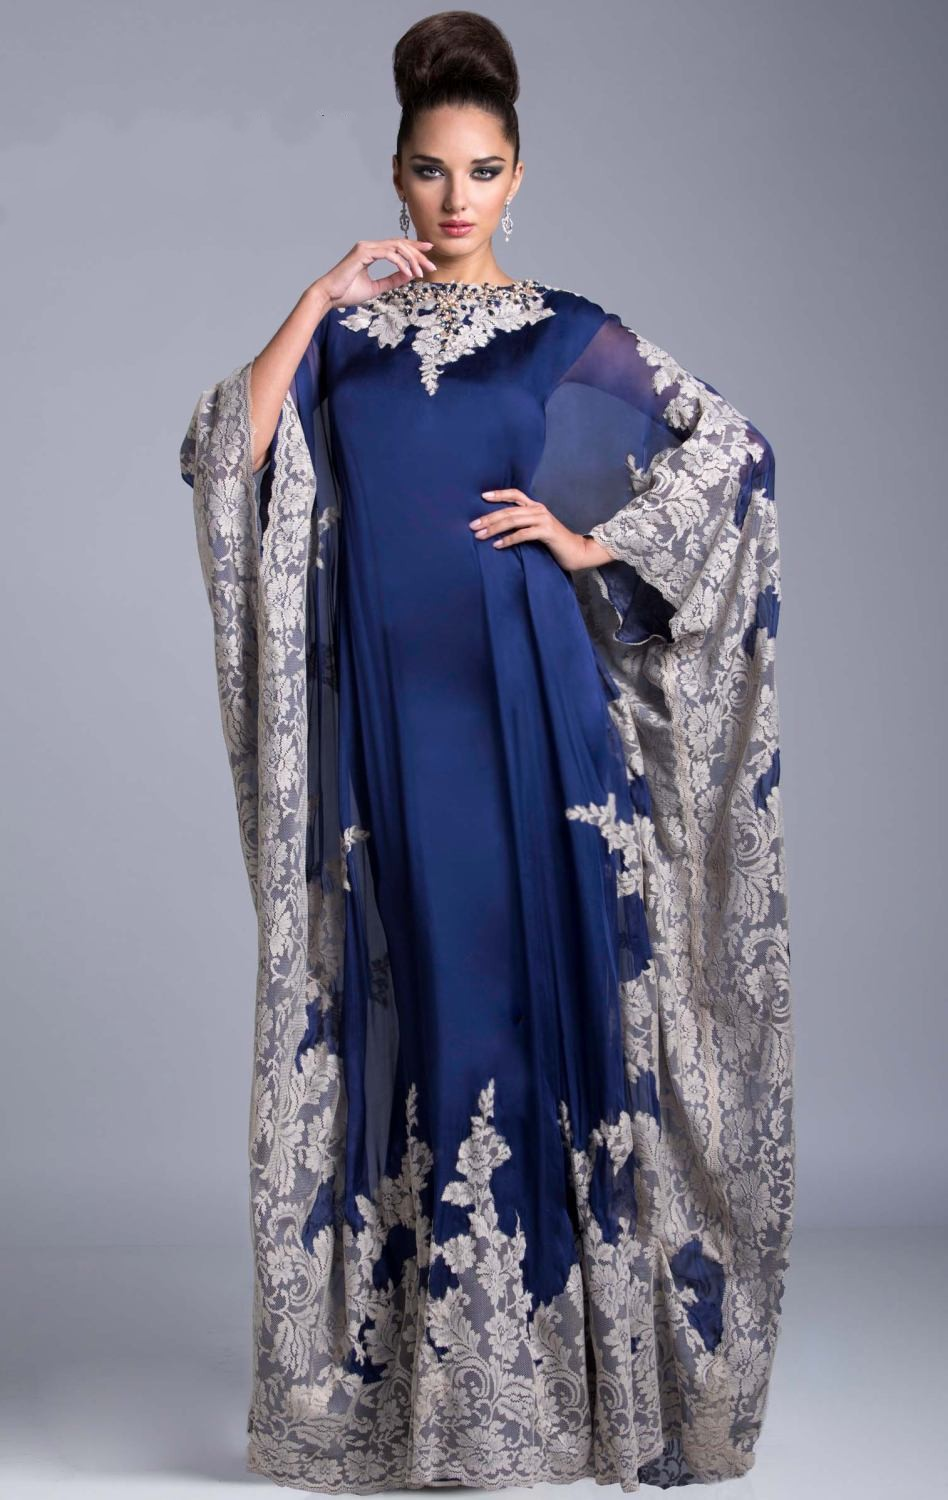 Custom Made Real Samples Arabic Kaftan Royal Blue Evening Prom Dresses 2015 Emboridery Abaya Dubai Chiffon Mother Of The Bride